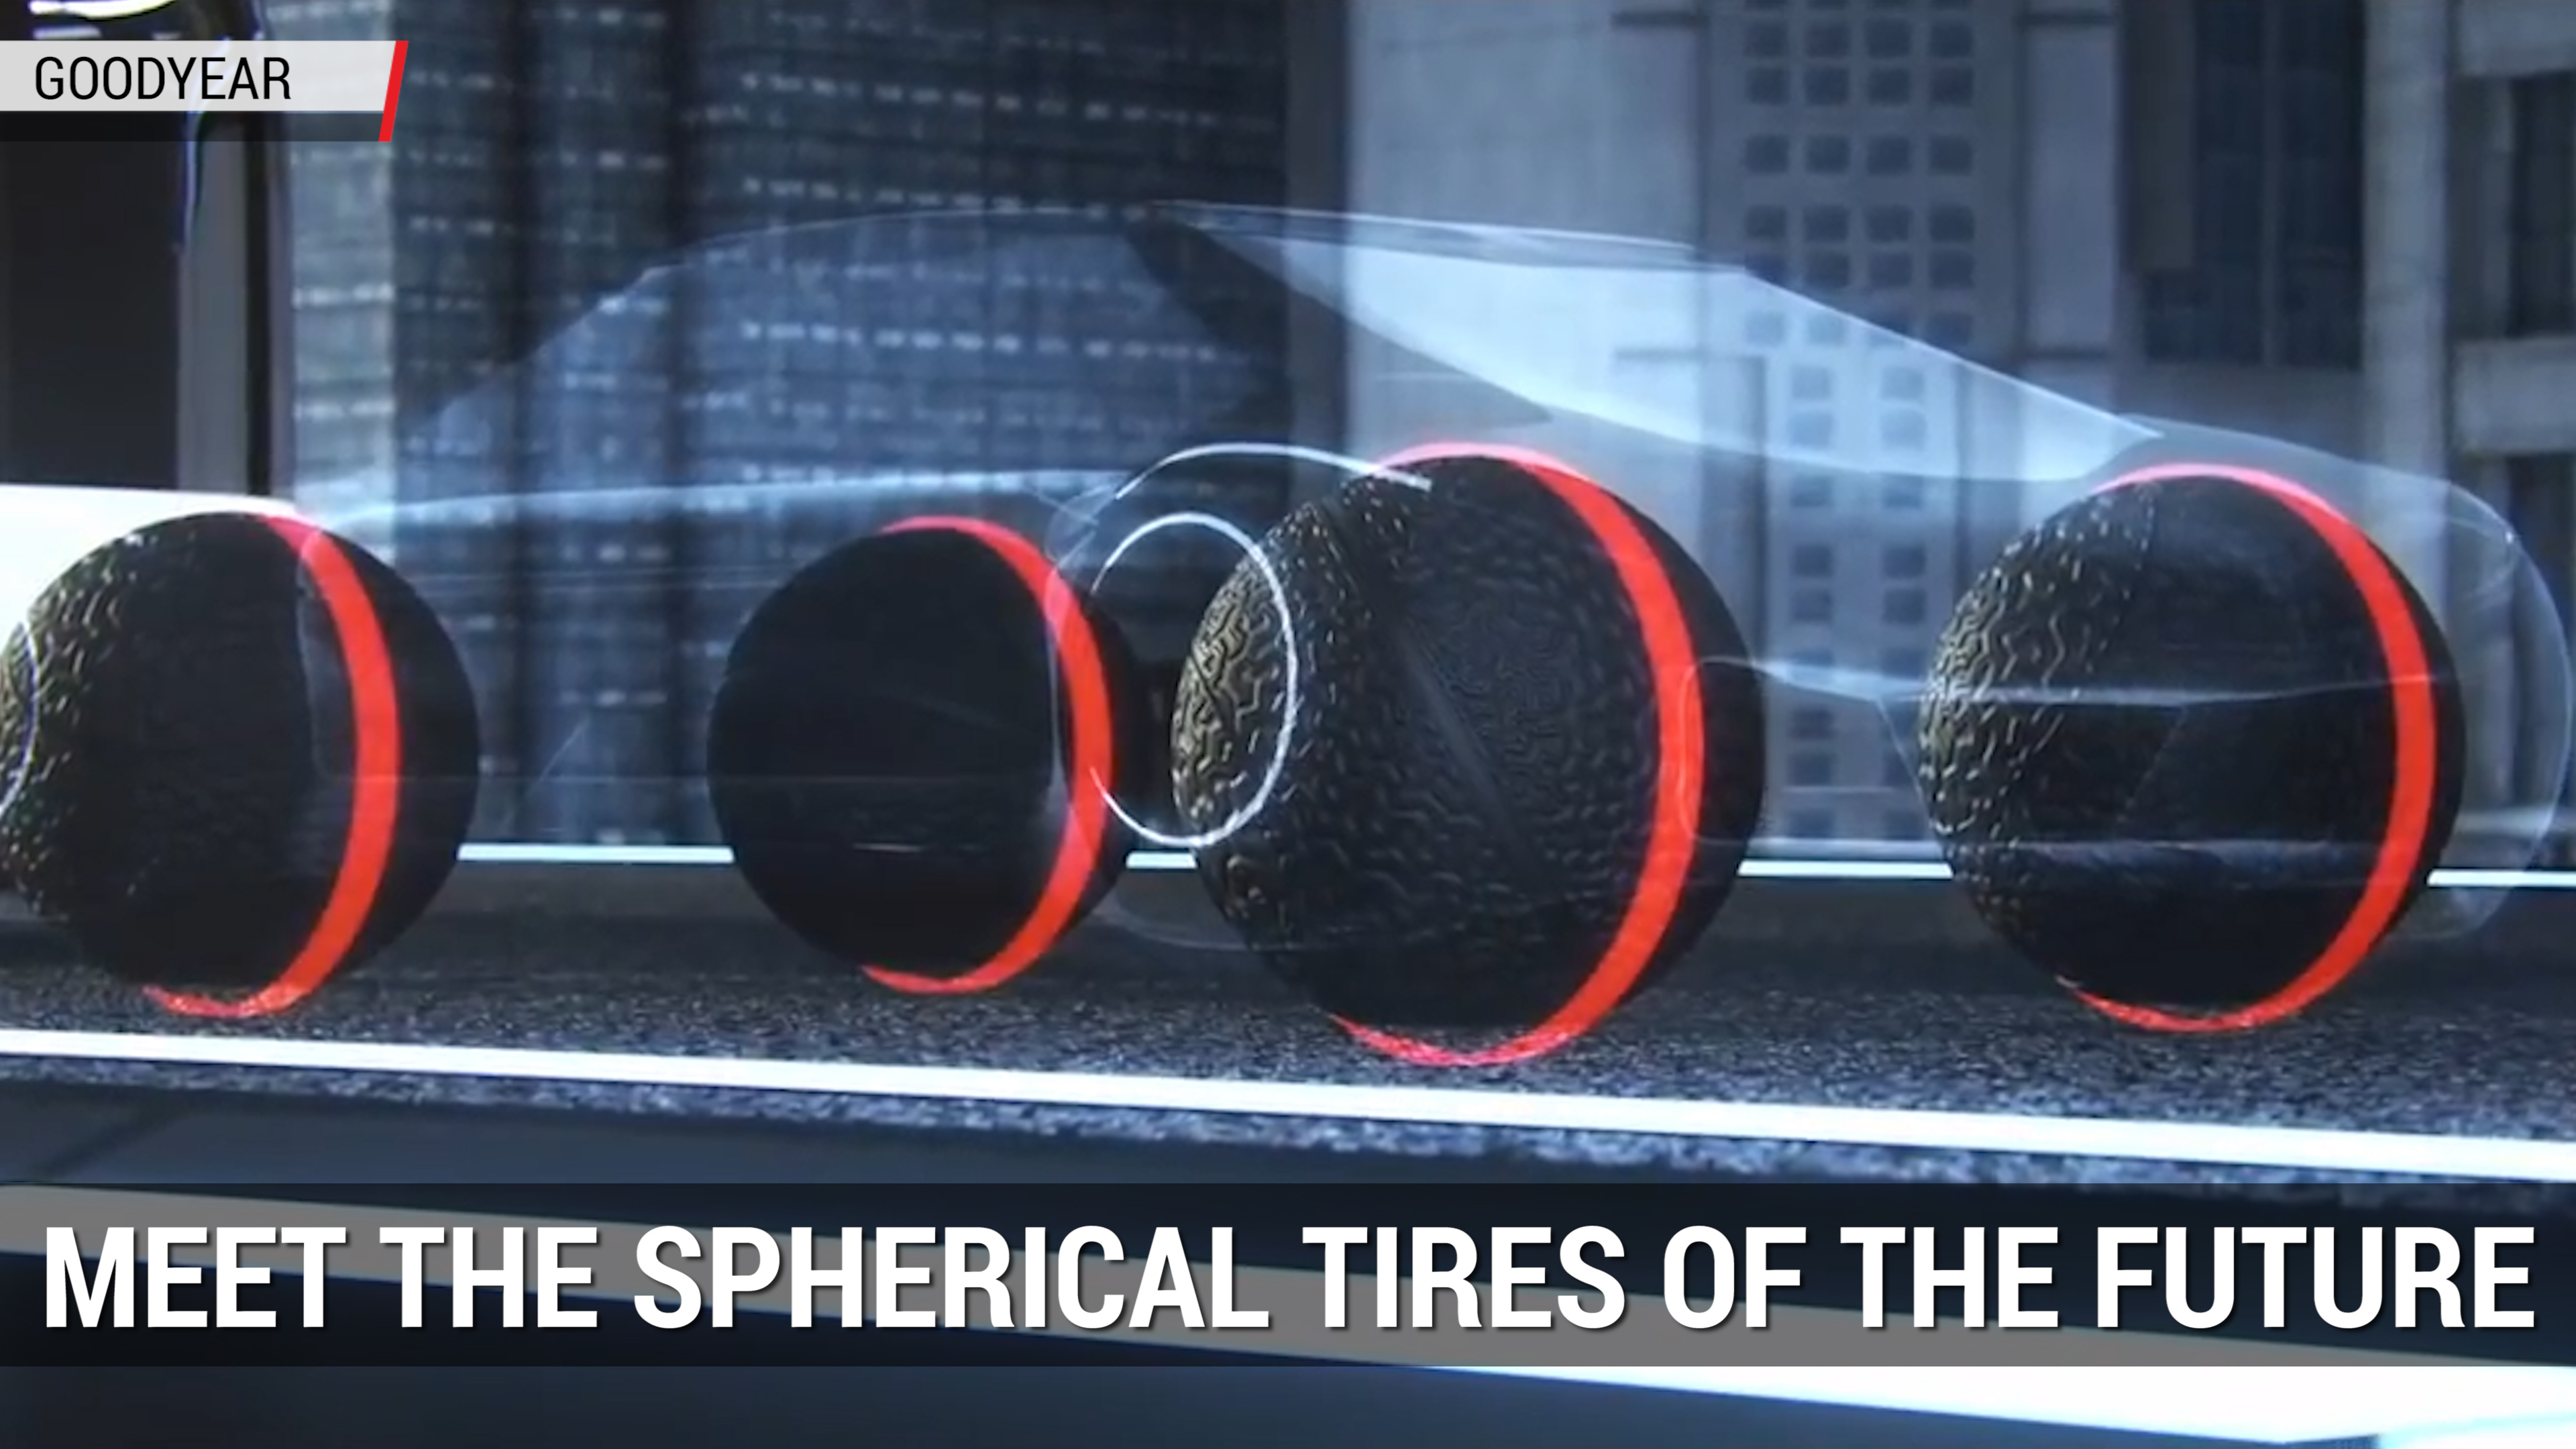 Goodyear's Spherical Tires of the Future | Autoblog Minute